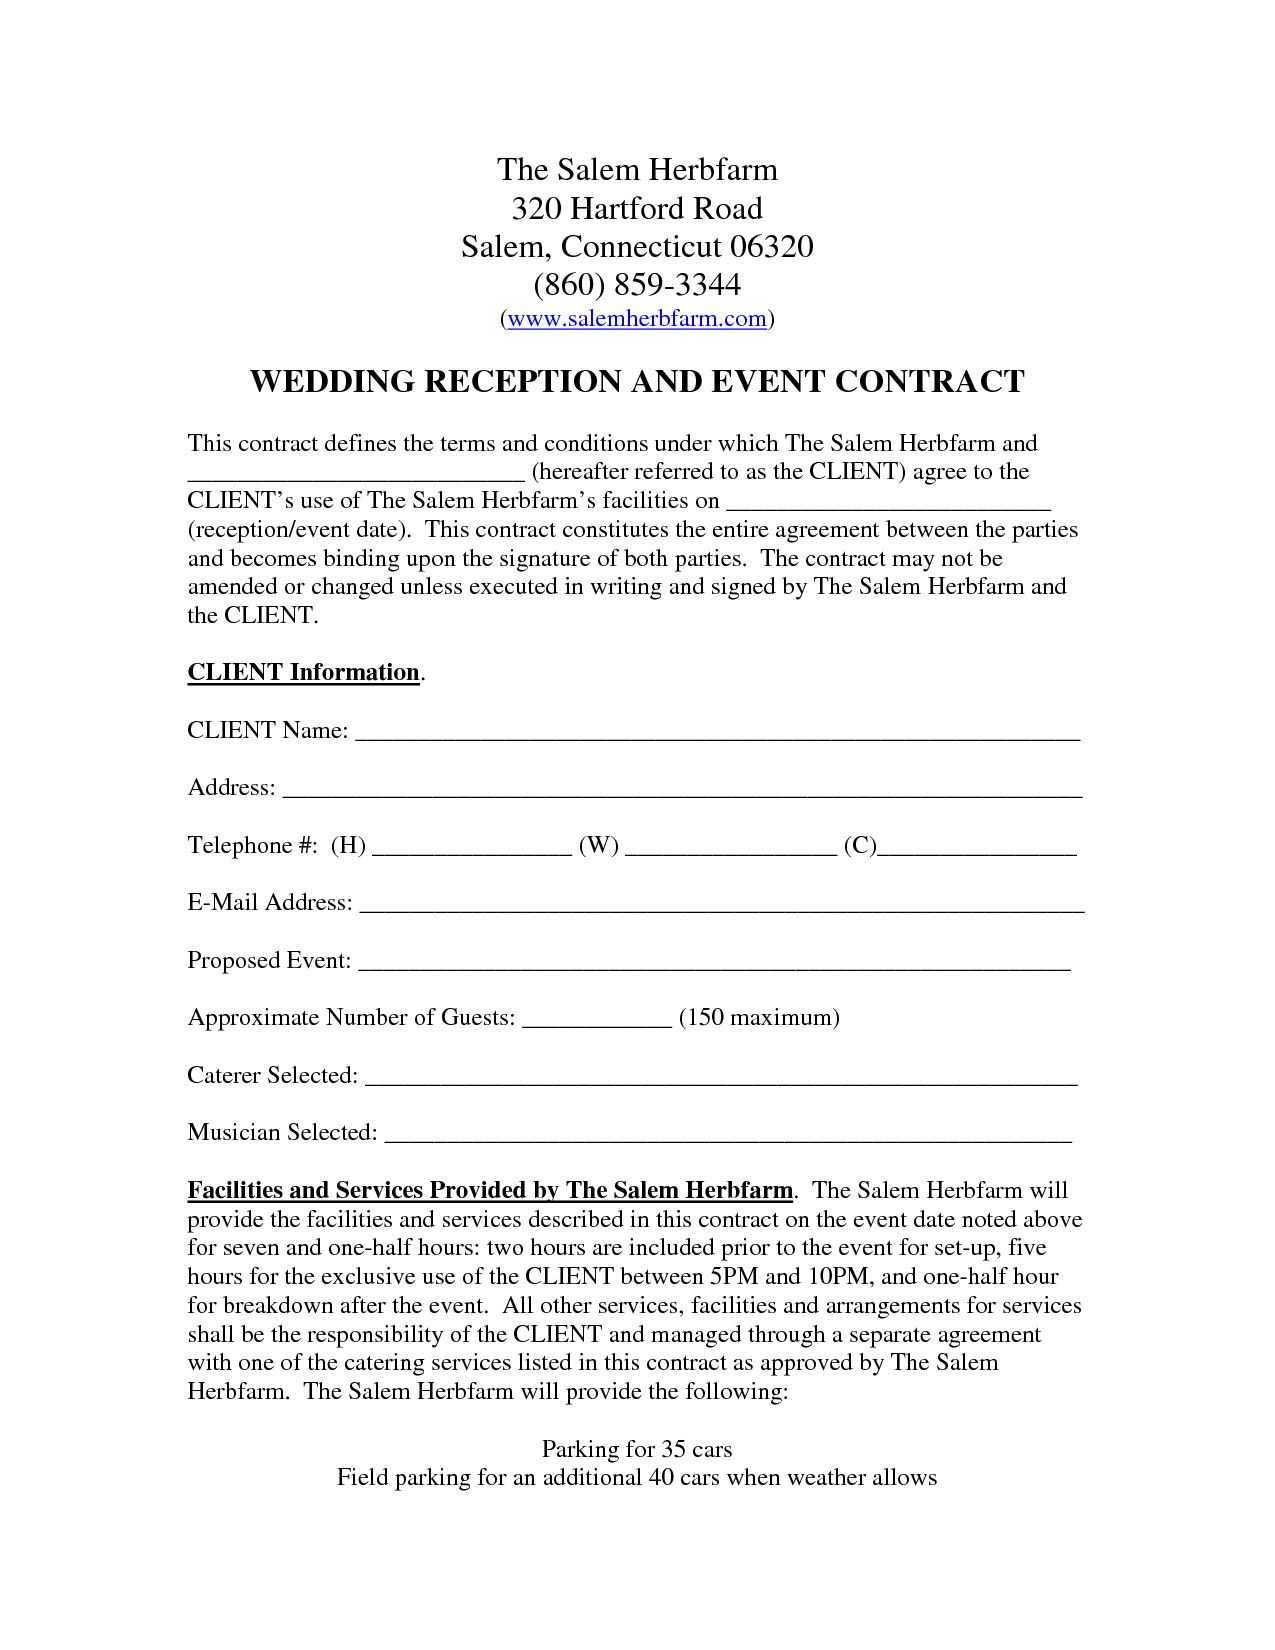 Venue Rental Contract Template Free Inspirational Wedding